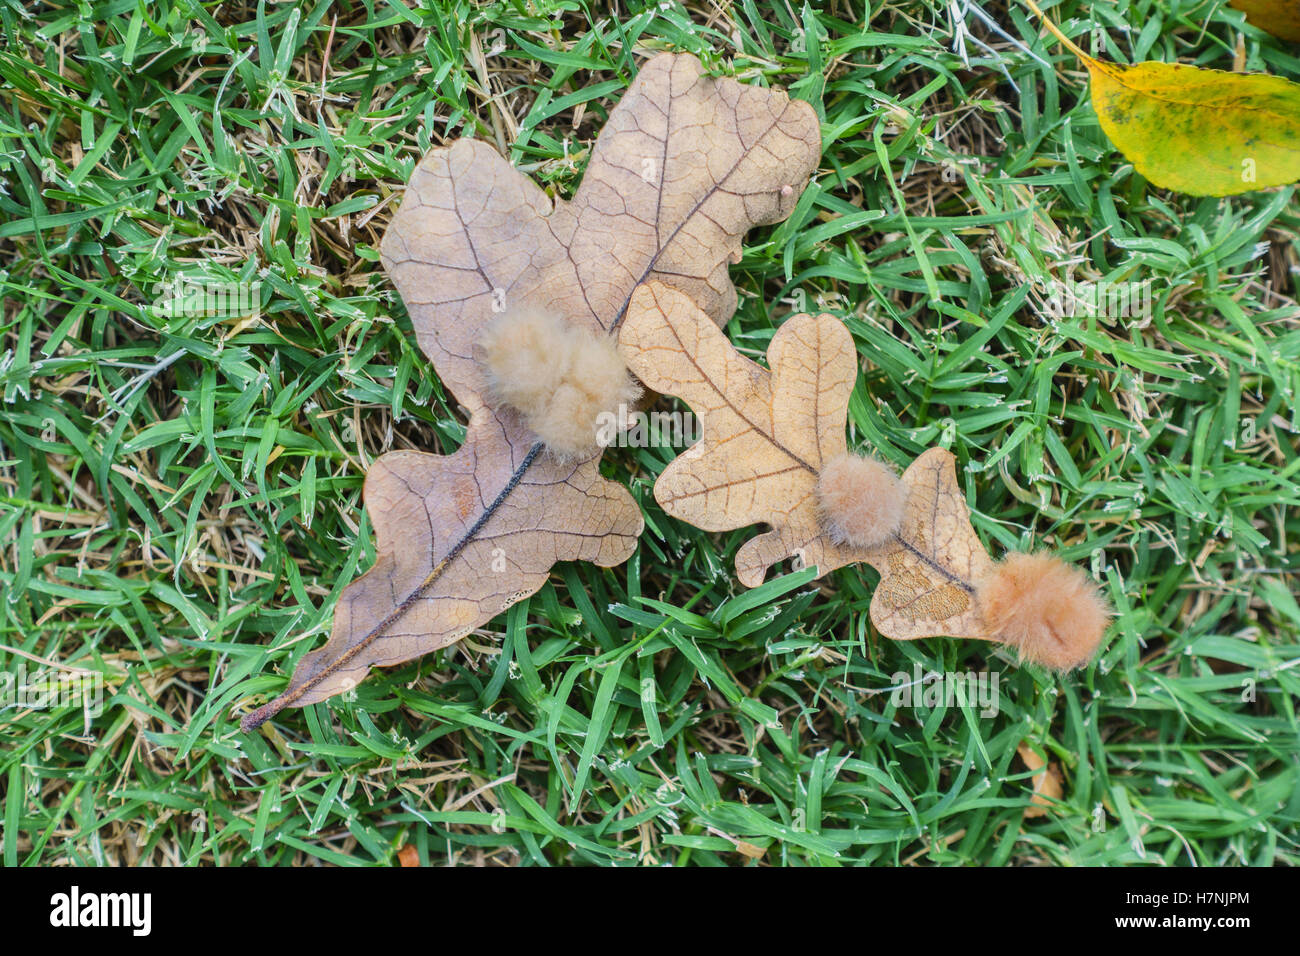 This is a gall on two white oak leaves. This gall is called an oak flake gall. Oklahoma, USA. - Stock Image